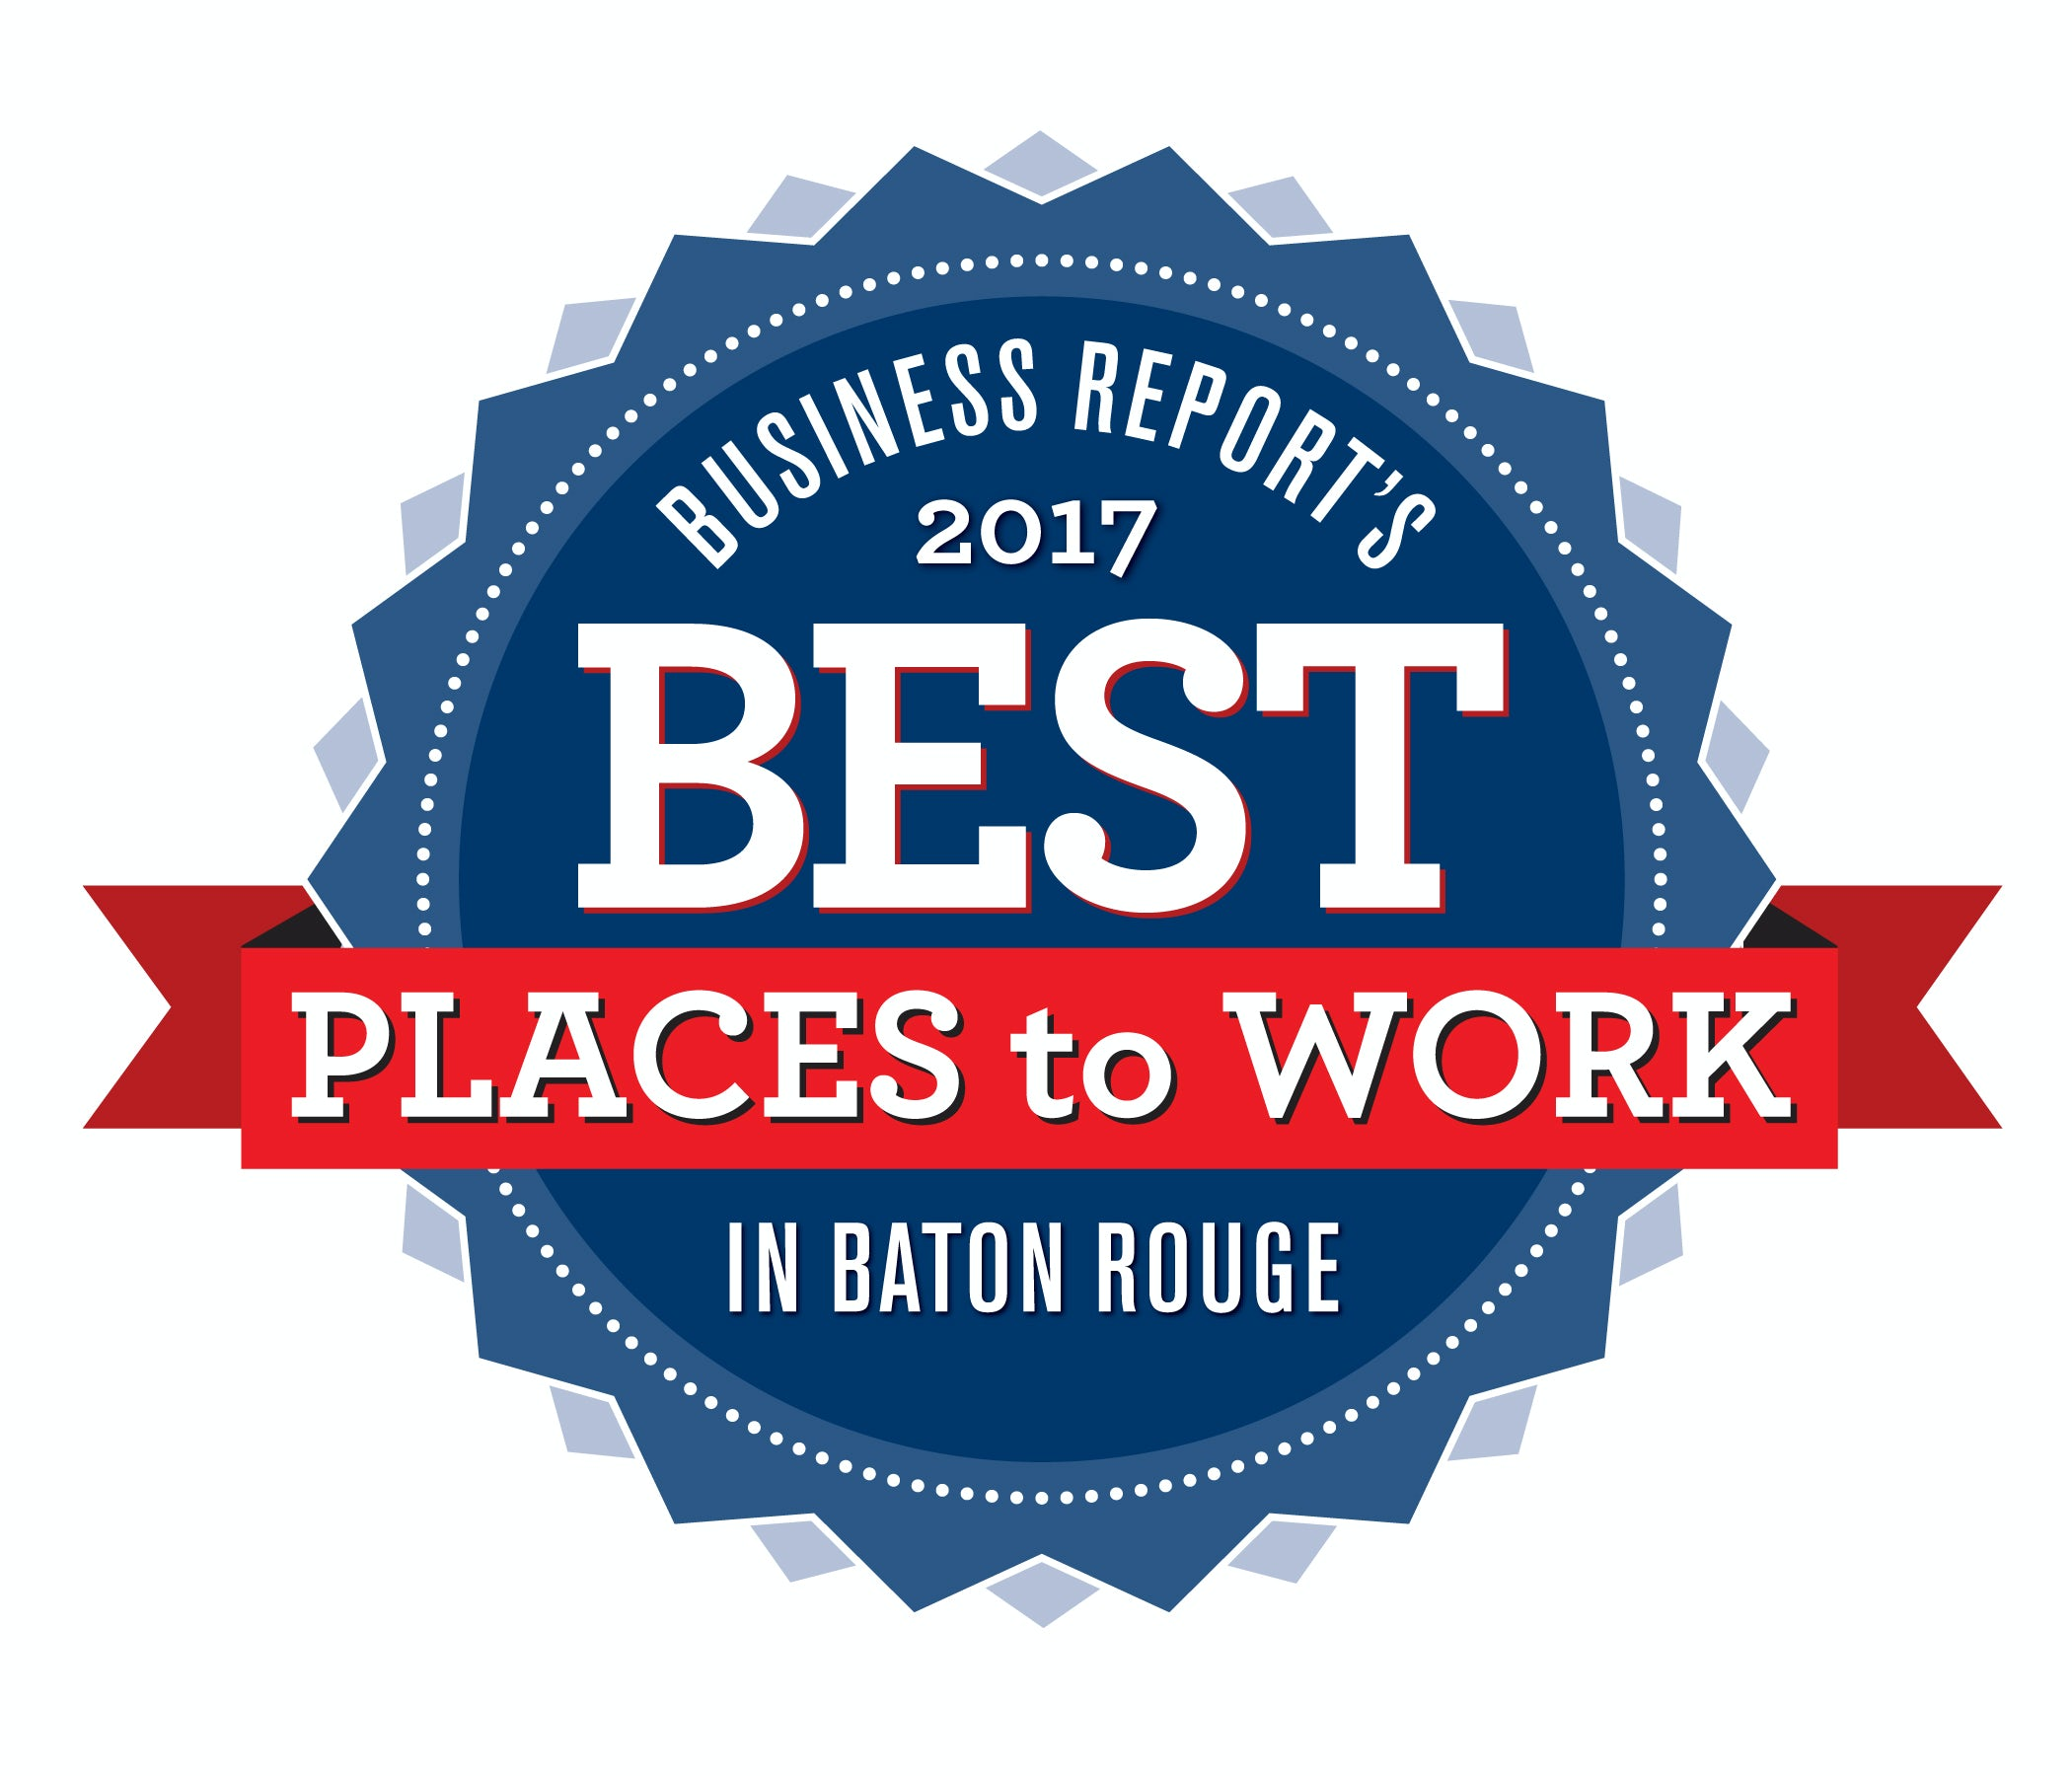 baton rouge business report The 2017 Best Places to Work in Baton Rouge - Baton Rouge Business ...